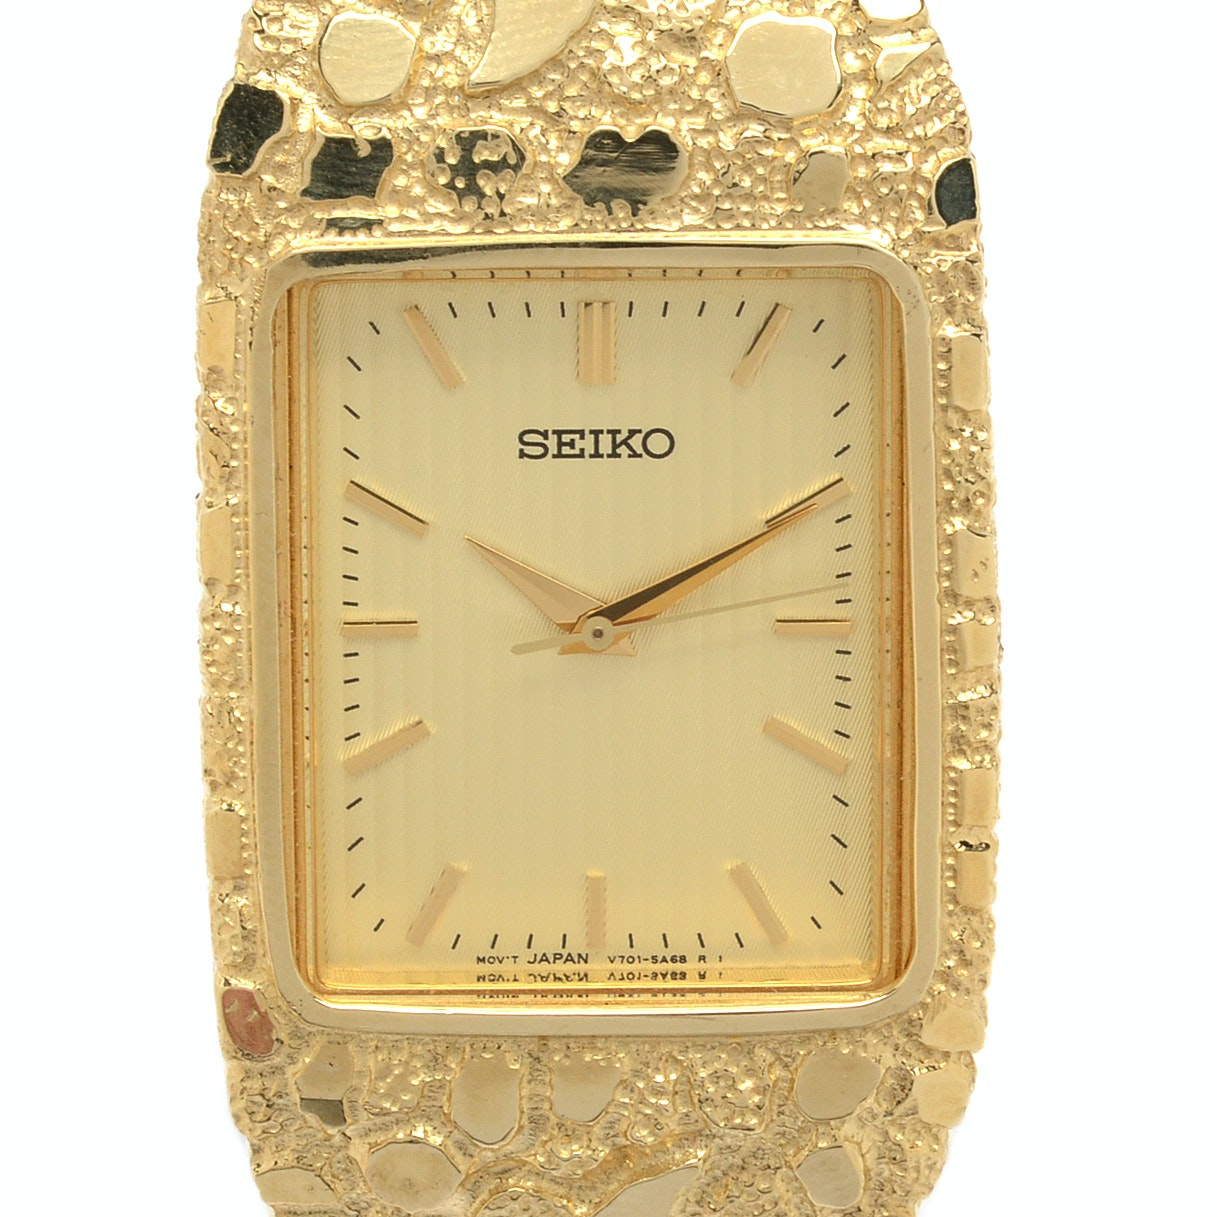 Seiko 10K Yellow Gold Nugget Style Wristwatch